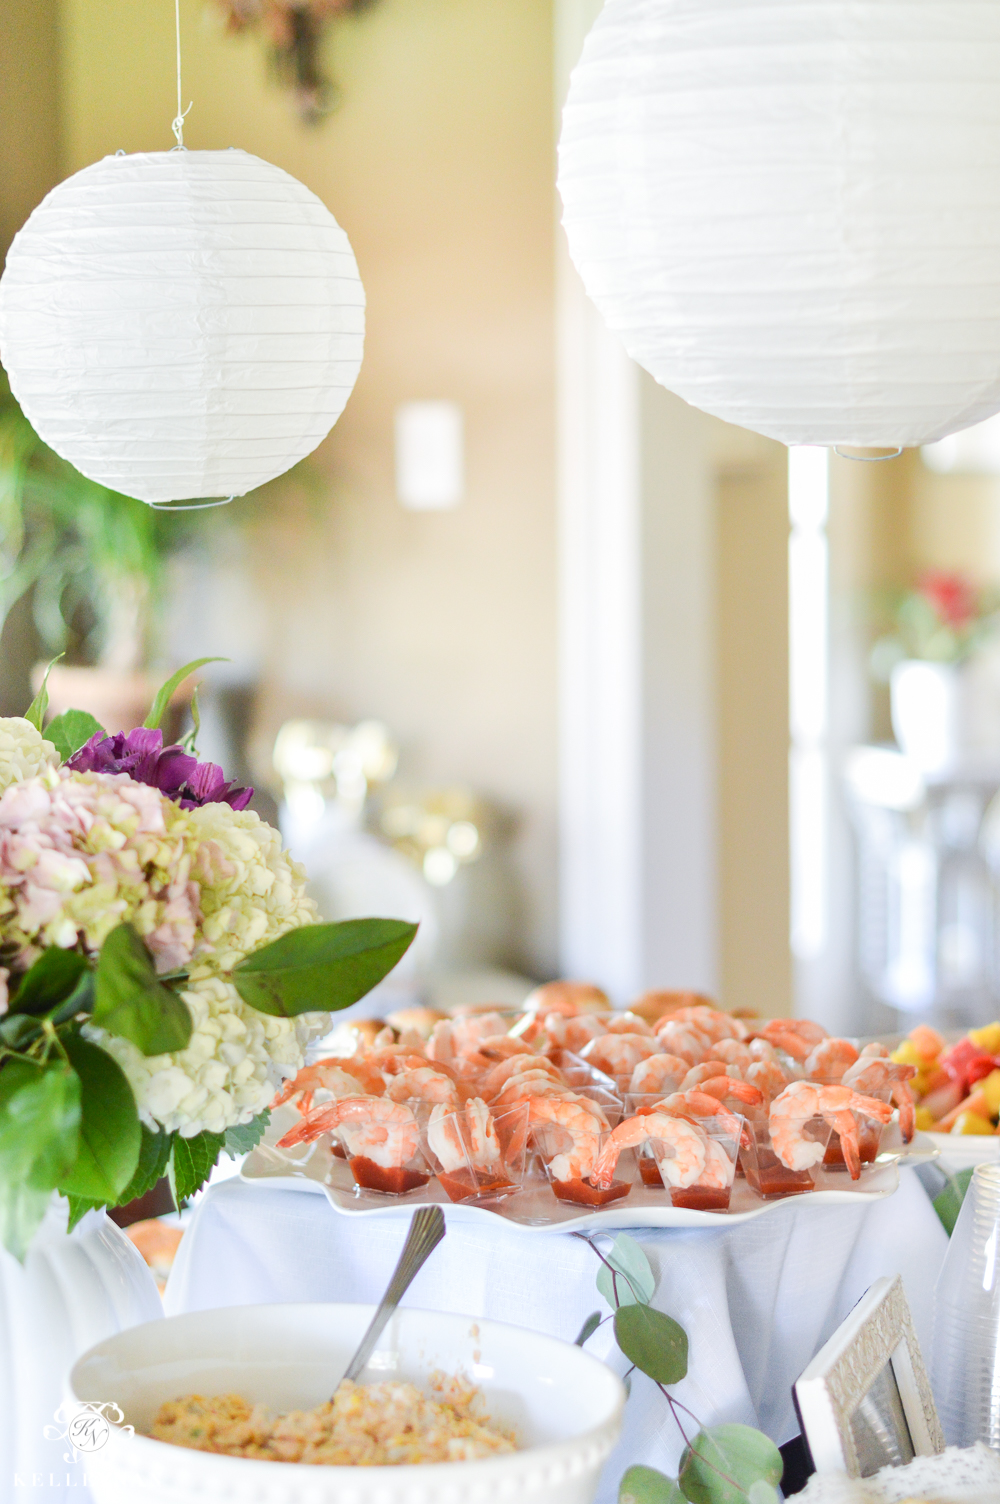 Southern Garden Party Bridal Shower Ideas- shrimp cocktail cups on platter